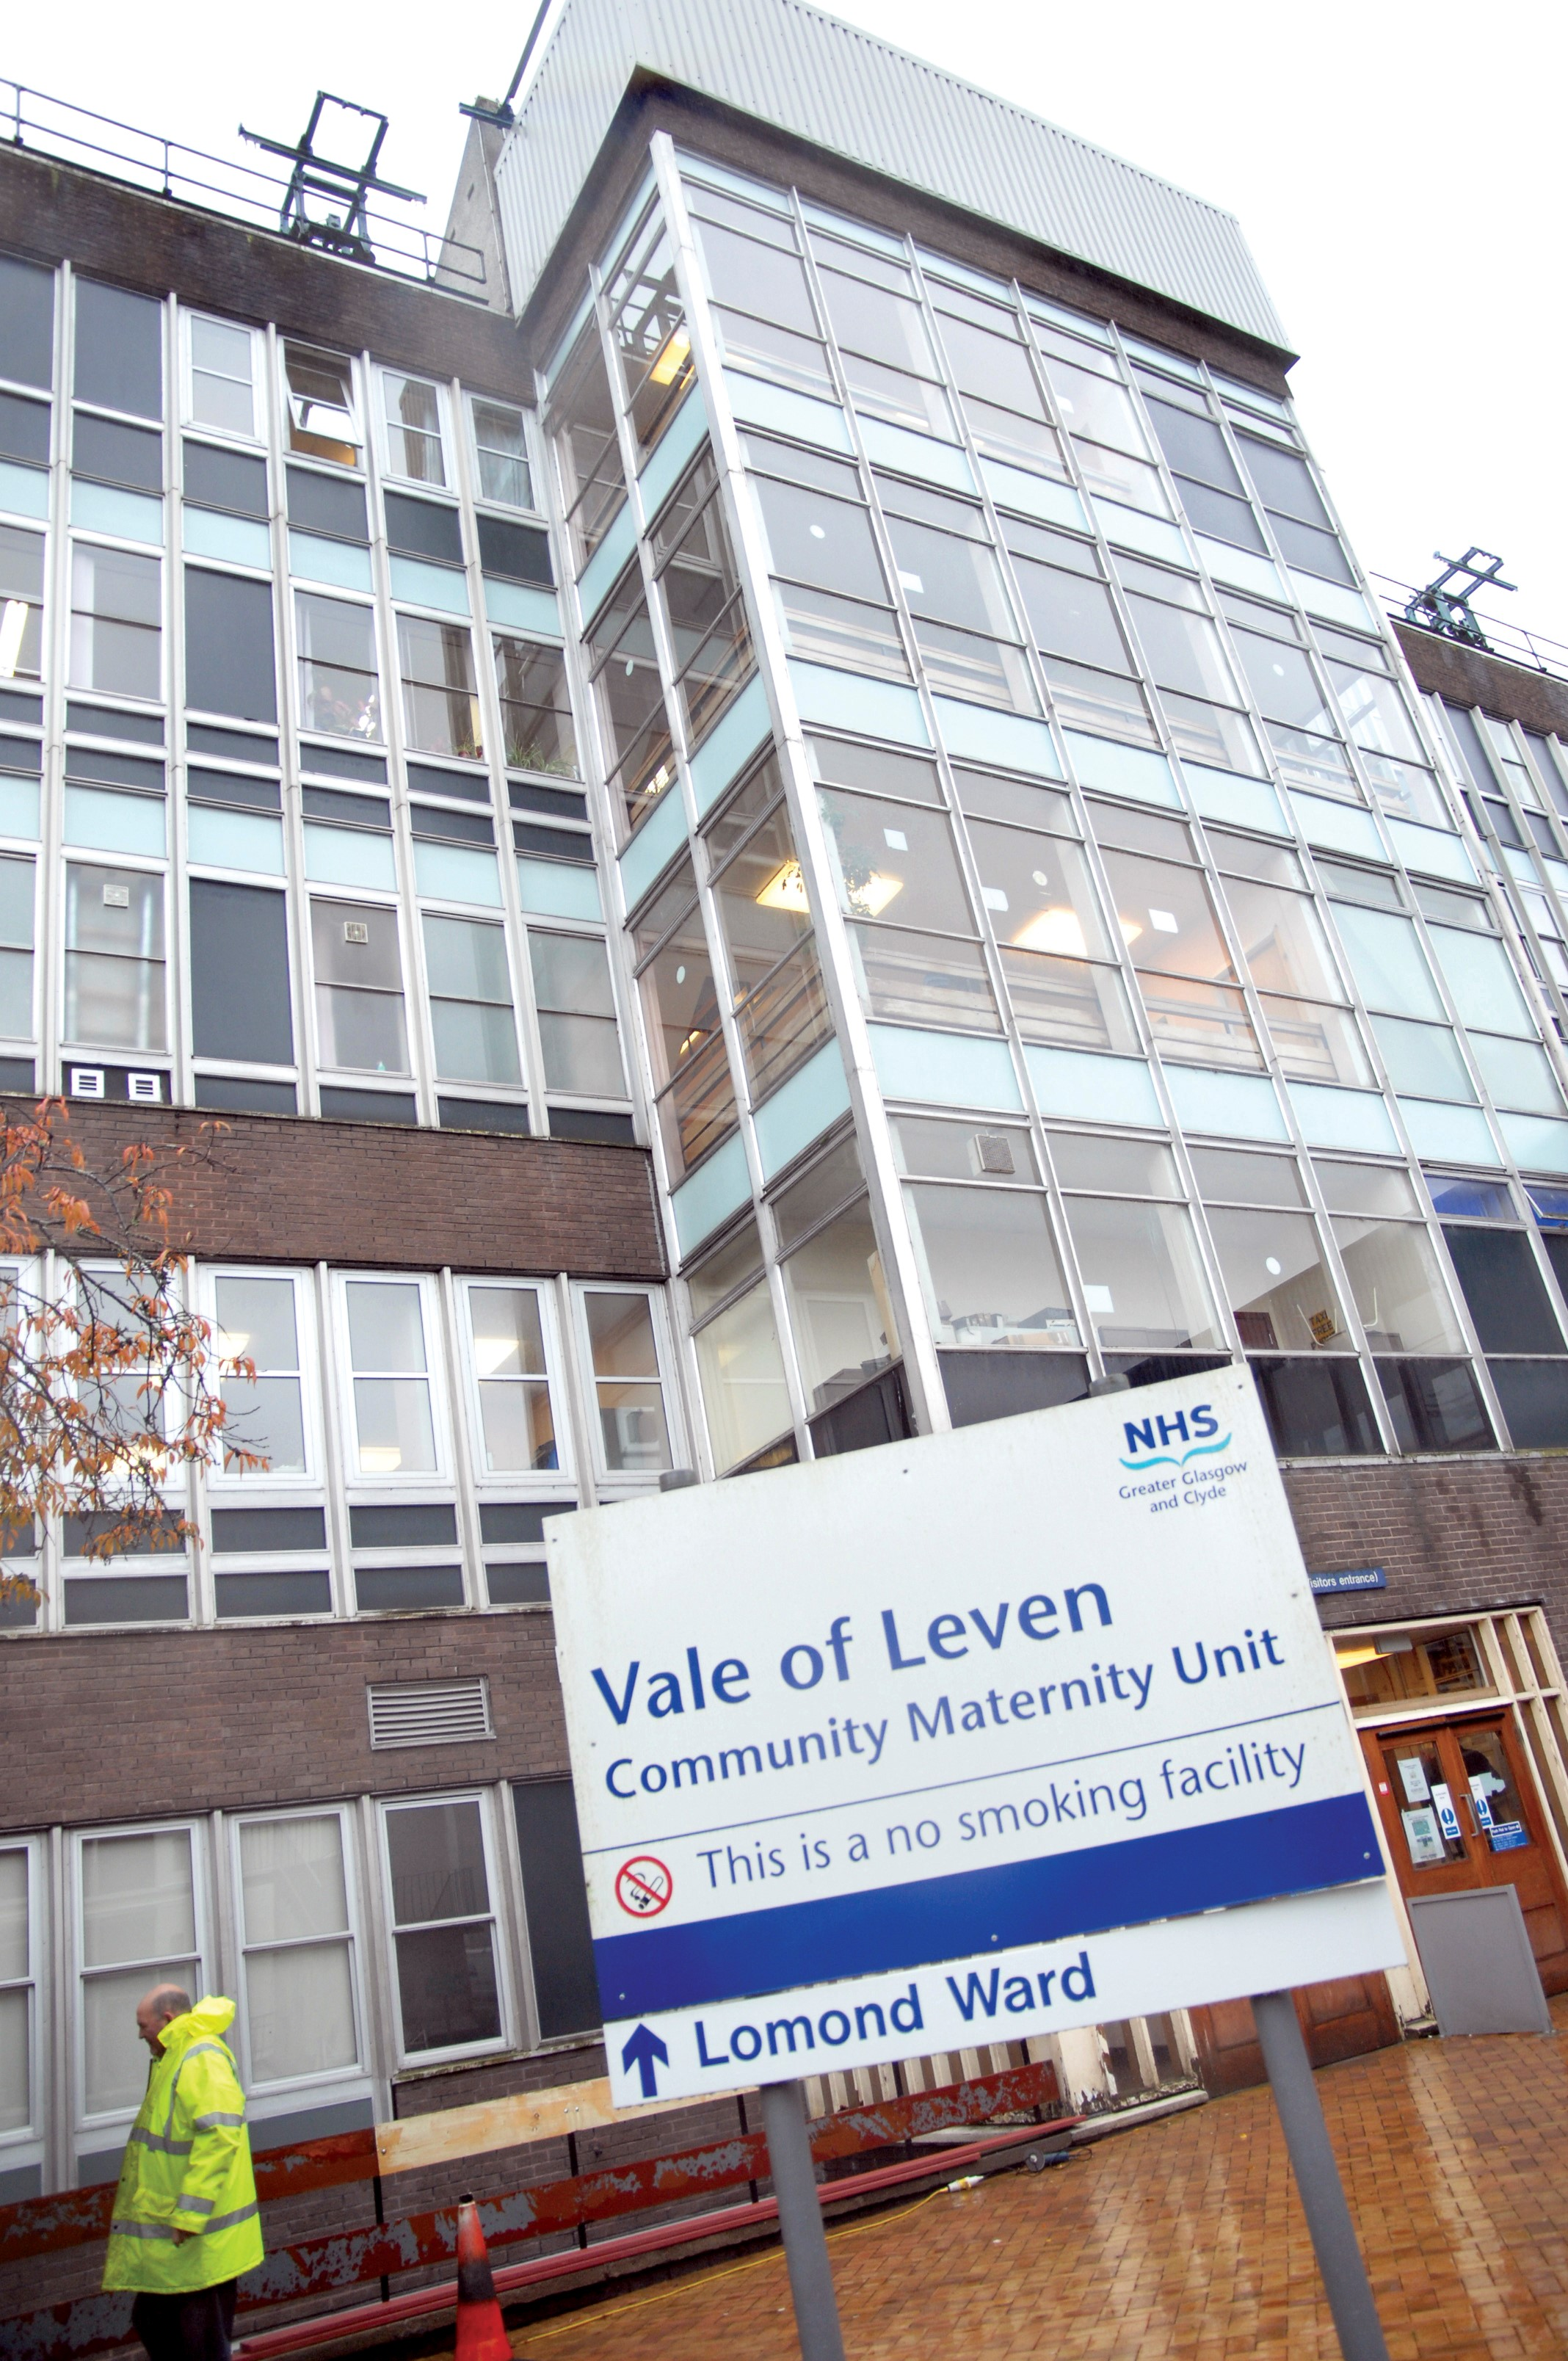 Clinicians back Vale of Leven Community Mataernity Unit changes